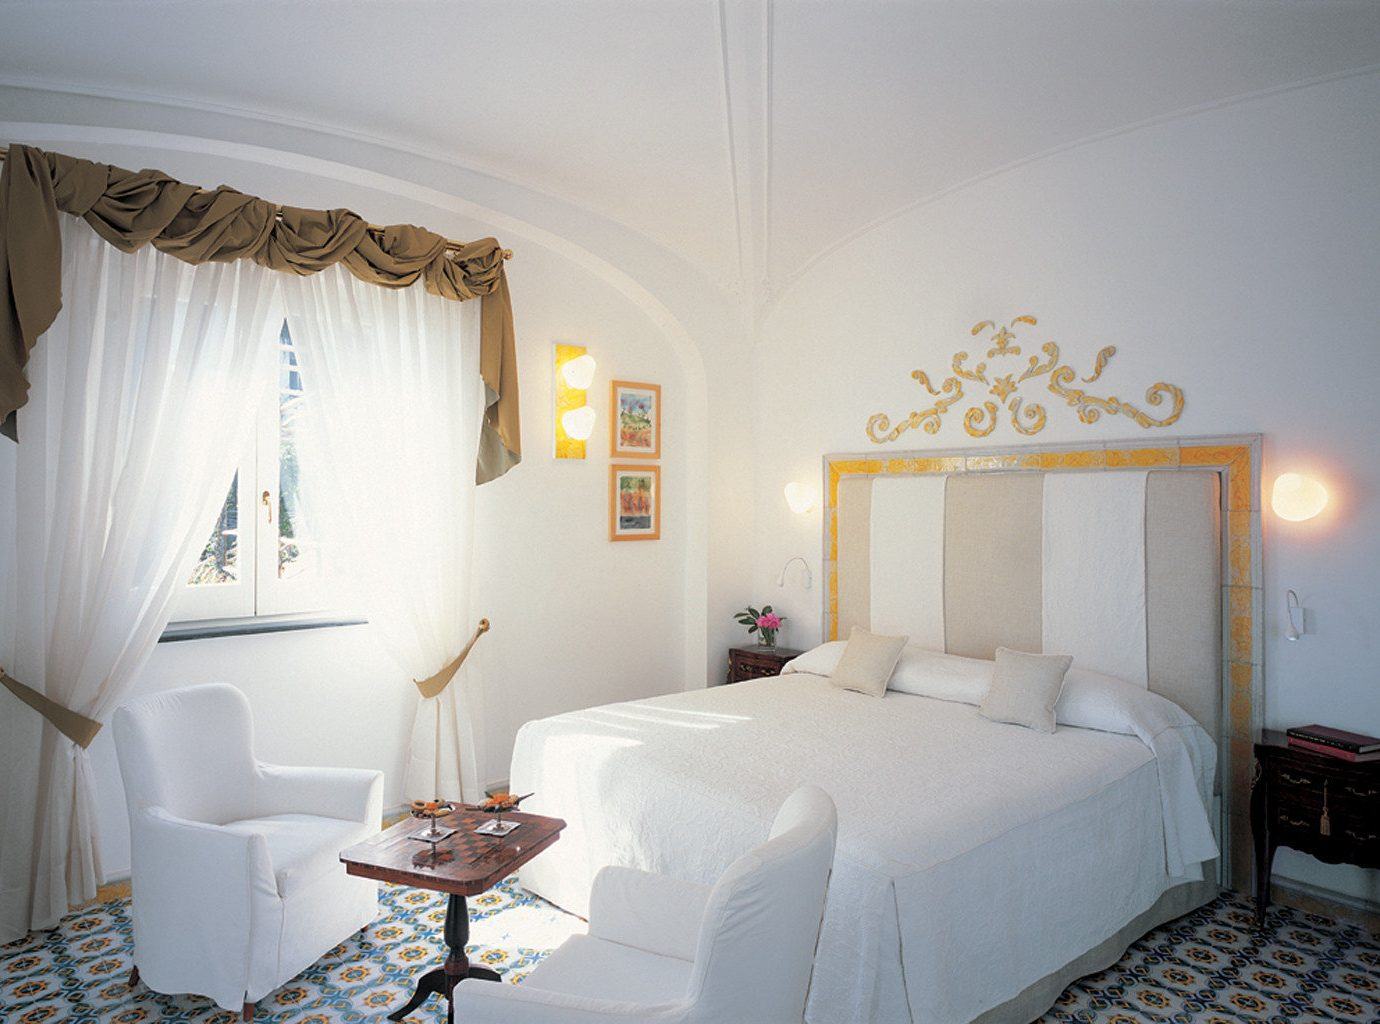 Bedroom at Hotel Santa Caterina, Amalfi